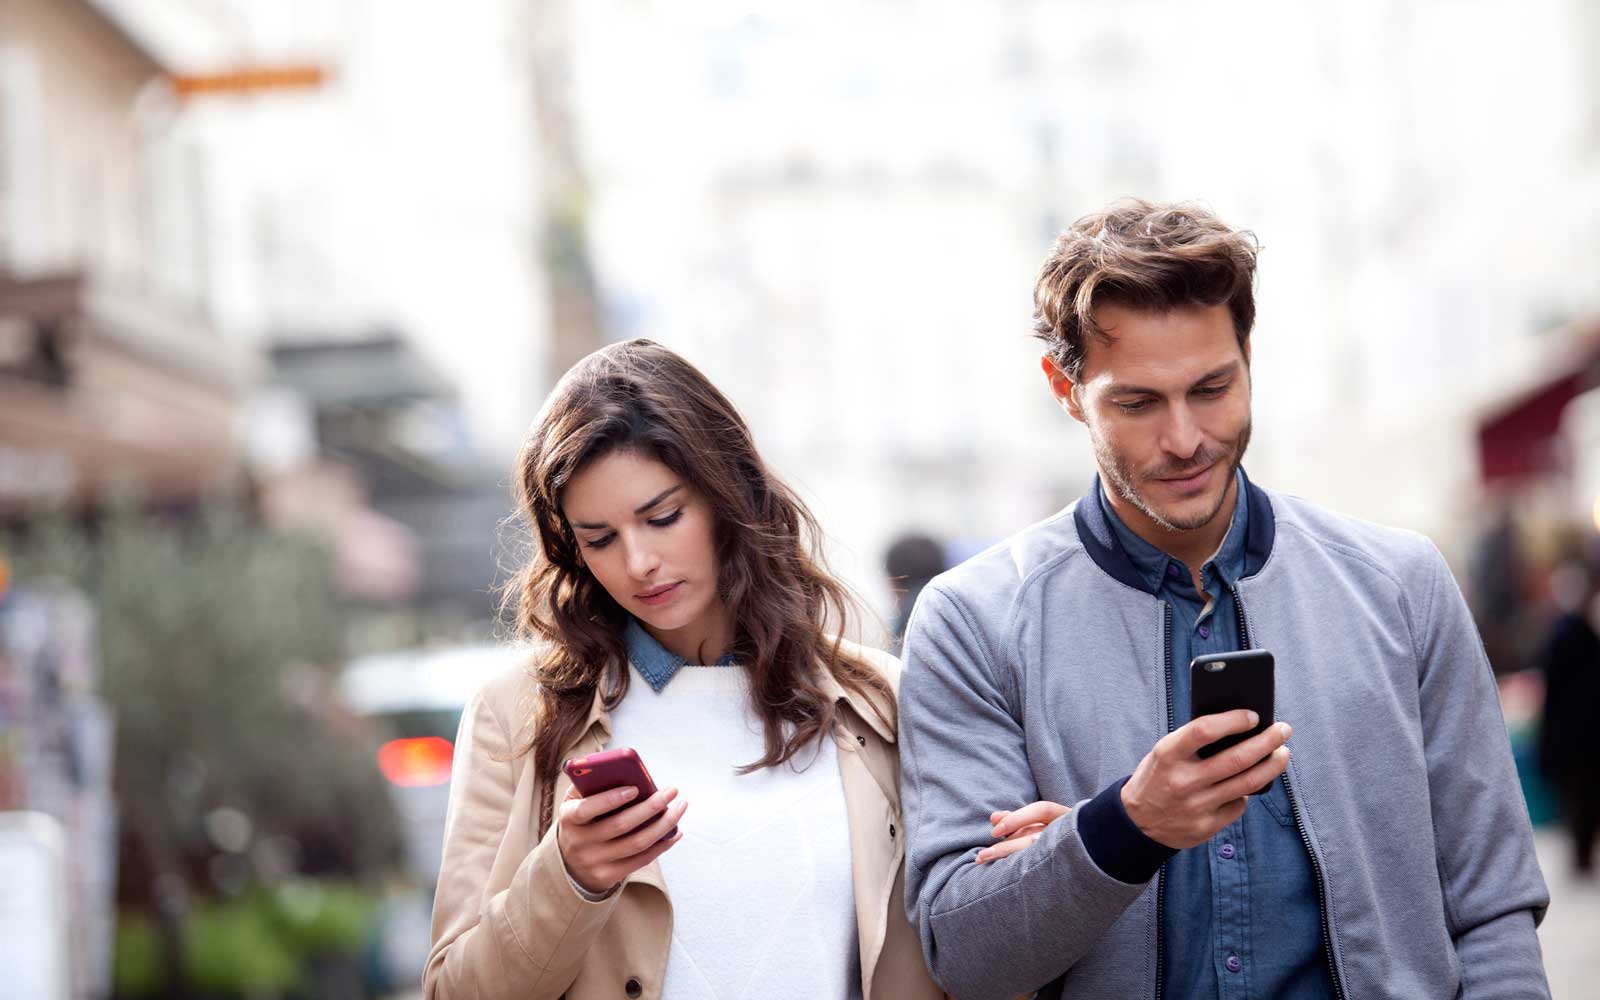 couple walking in the street watching their smartphone